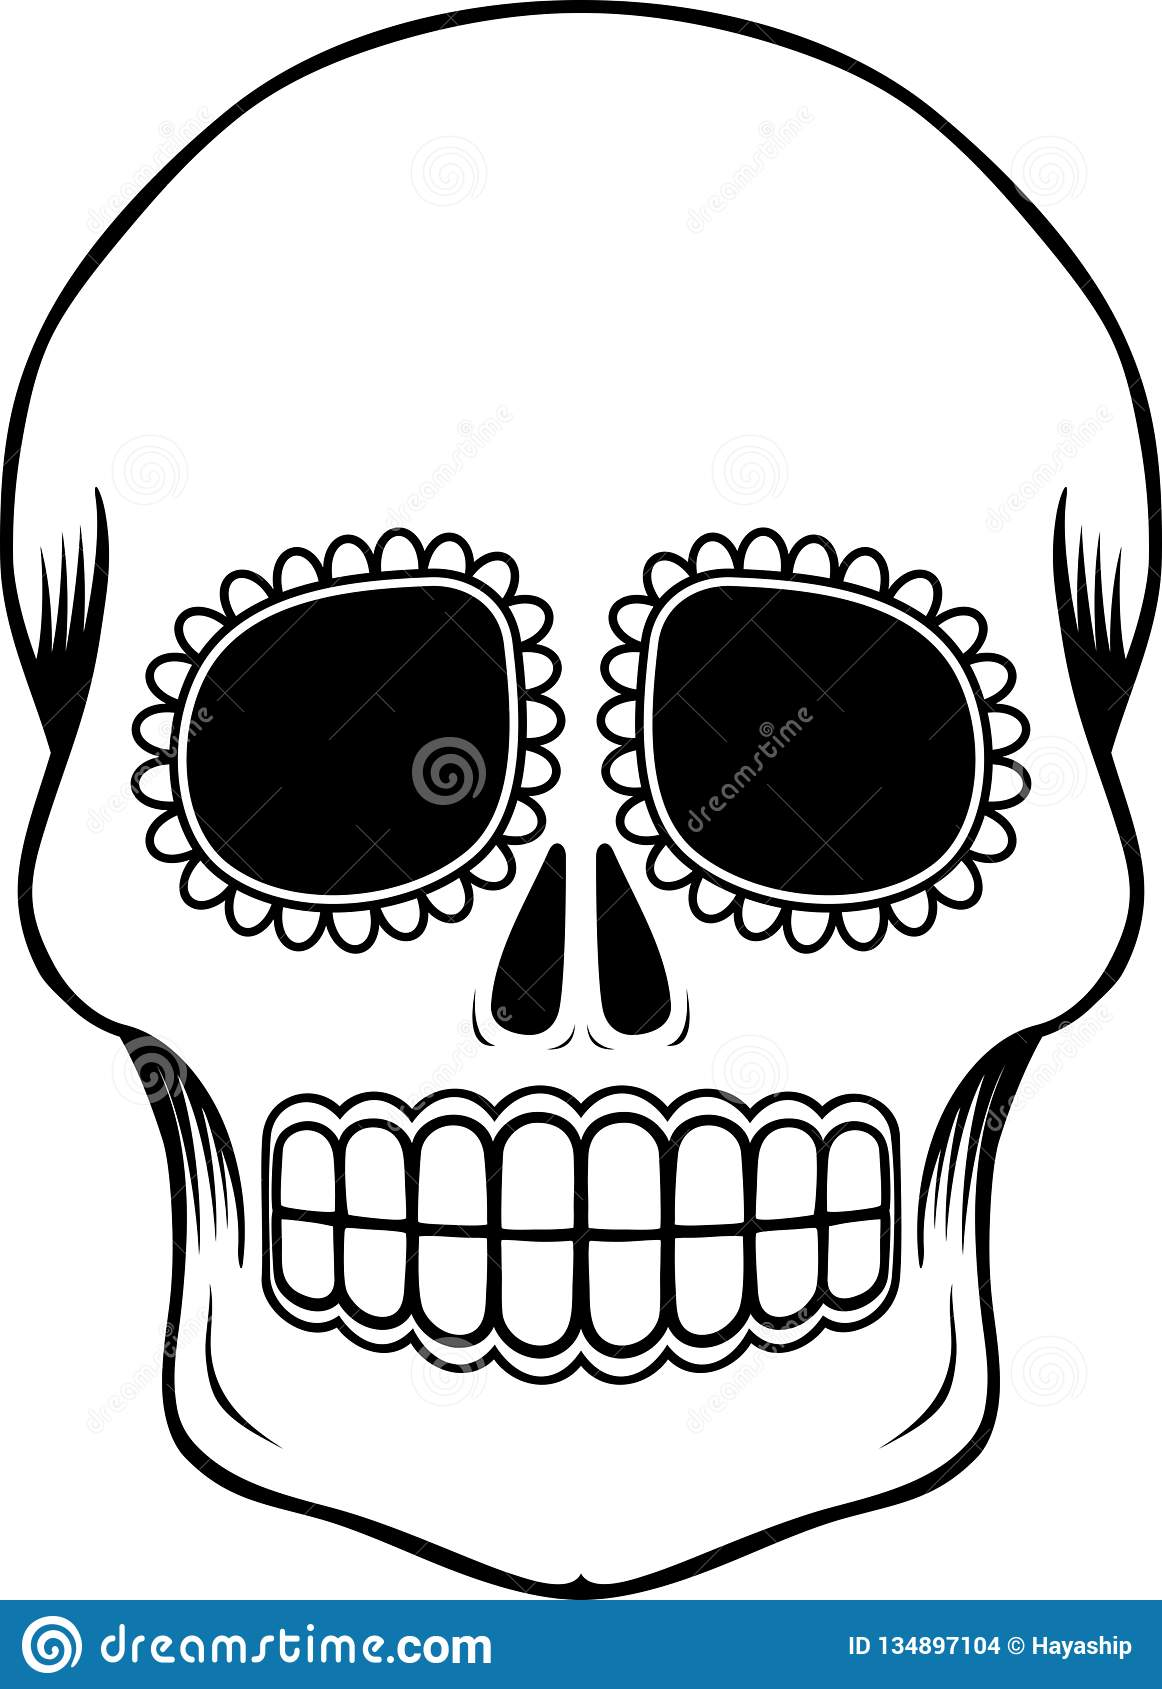 It is a photo of Day of the Dead Printable Masks with skeleton